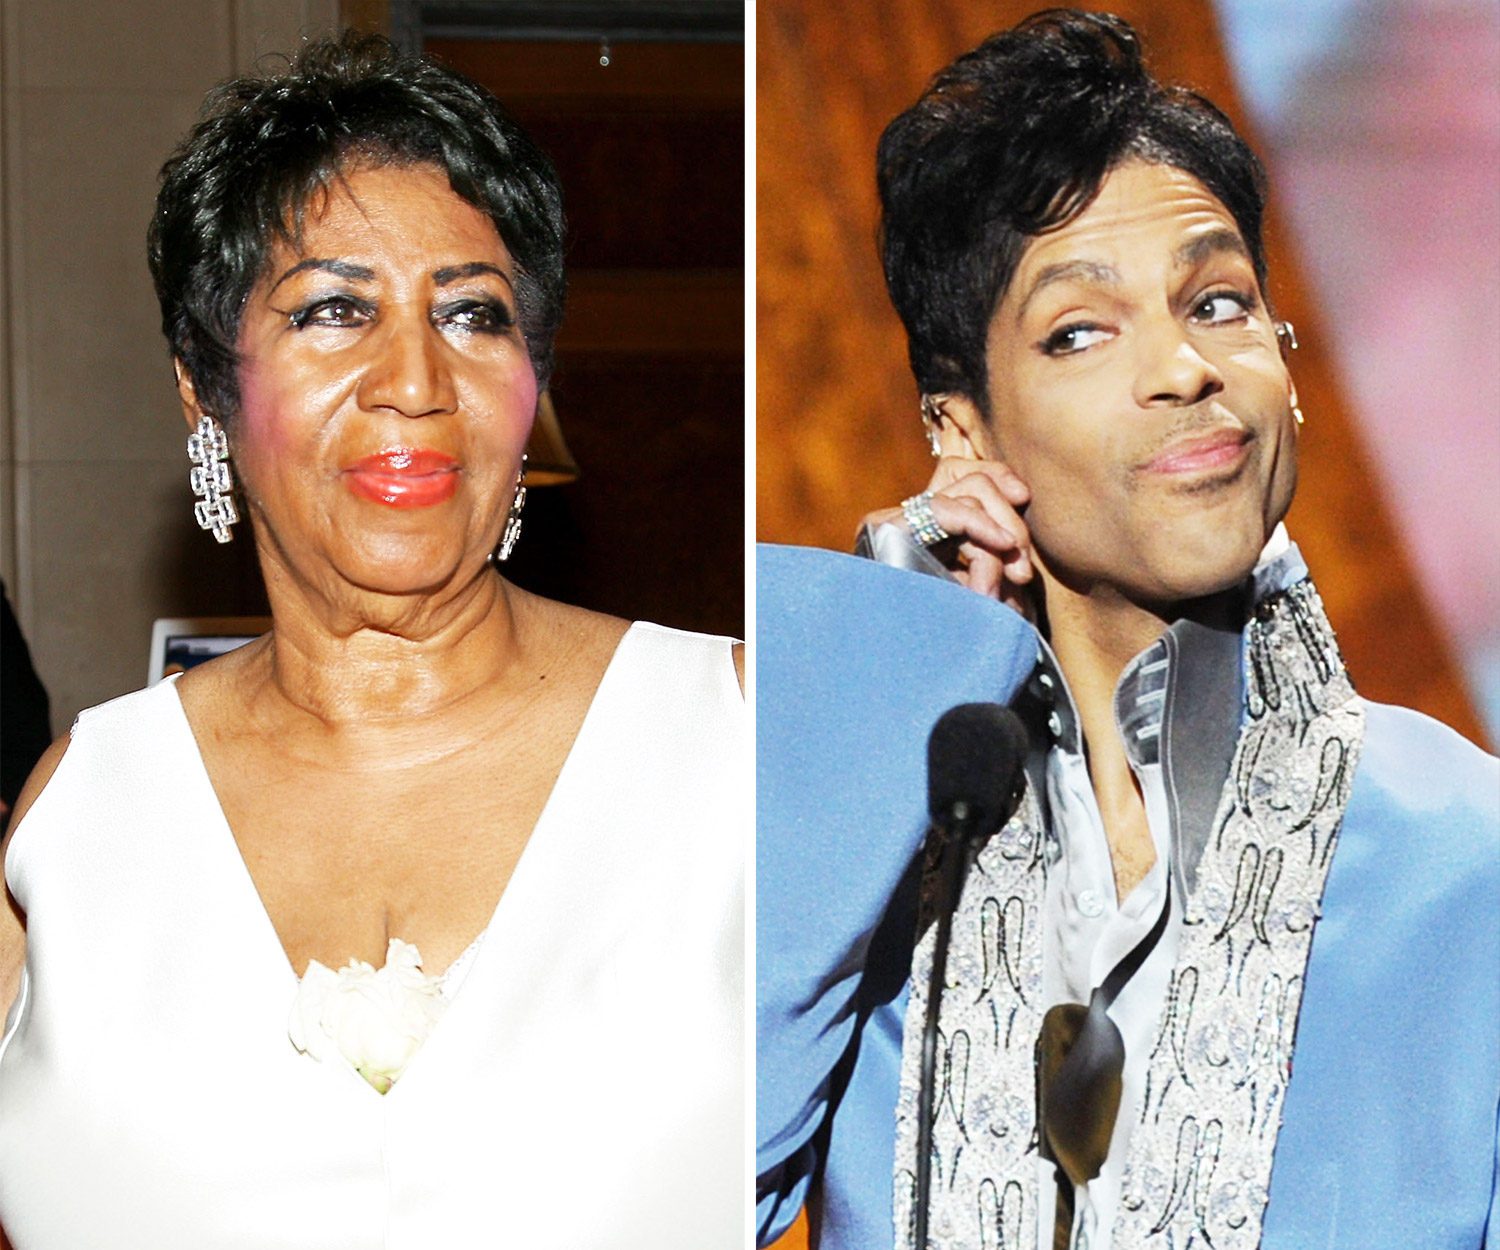 Aretha Franklin and Prince